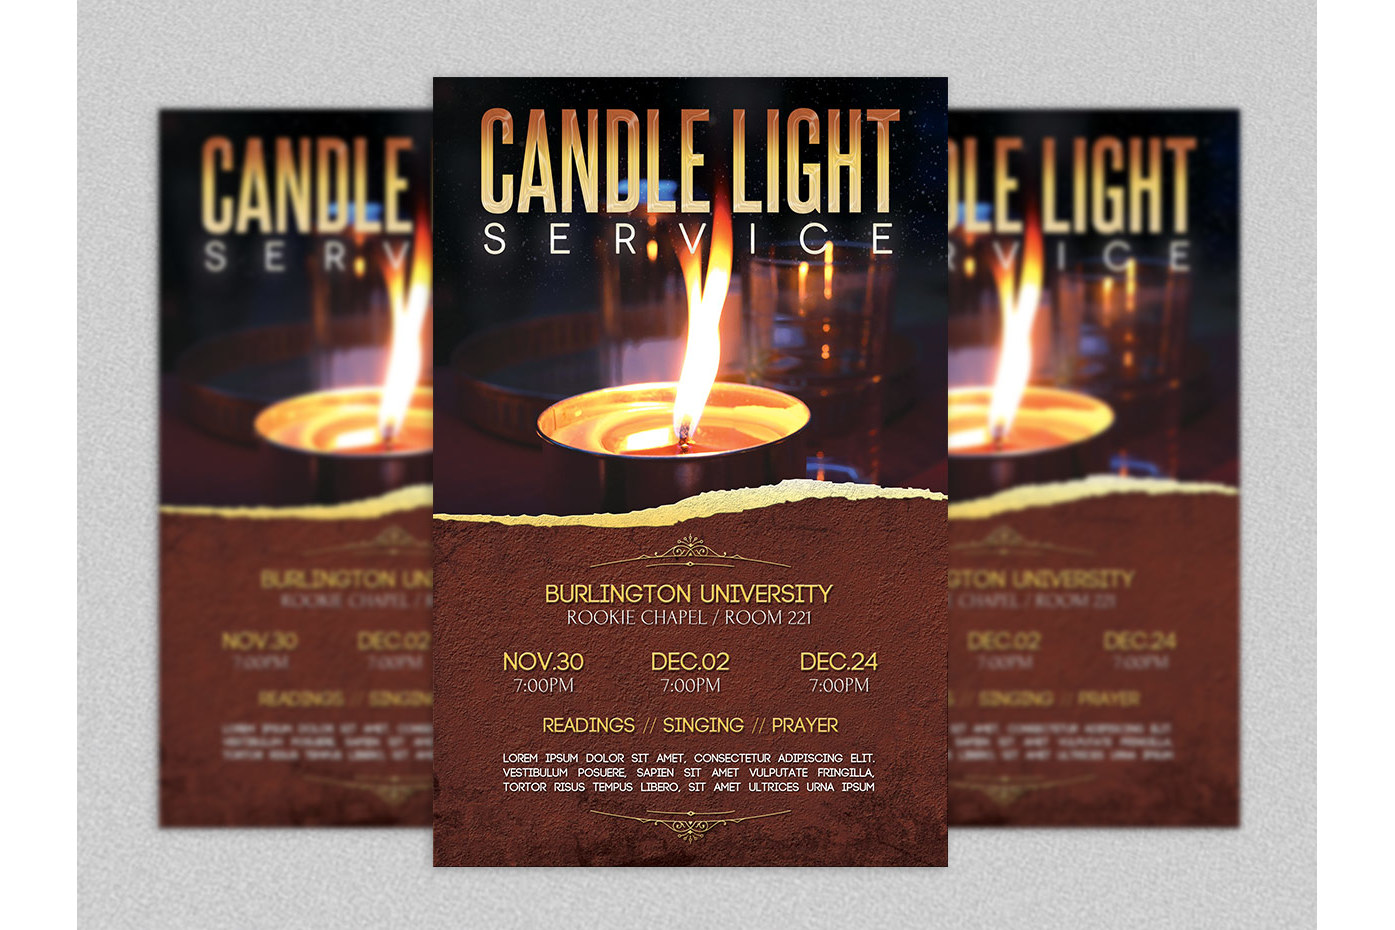 candle light service flyer template by design bundles candle light service flyer template